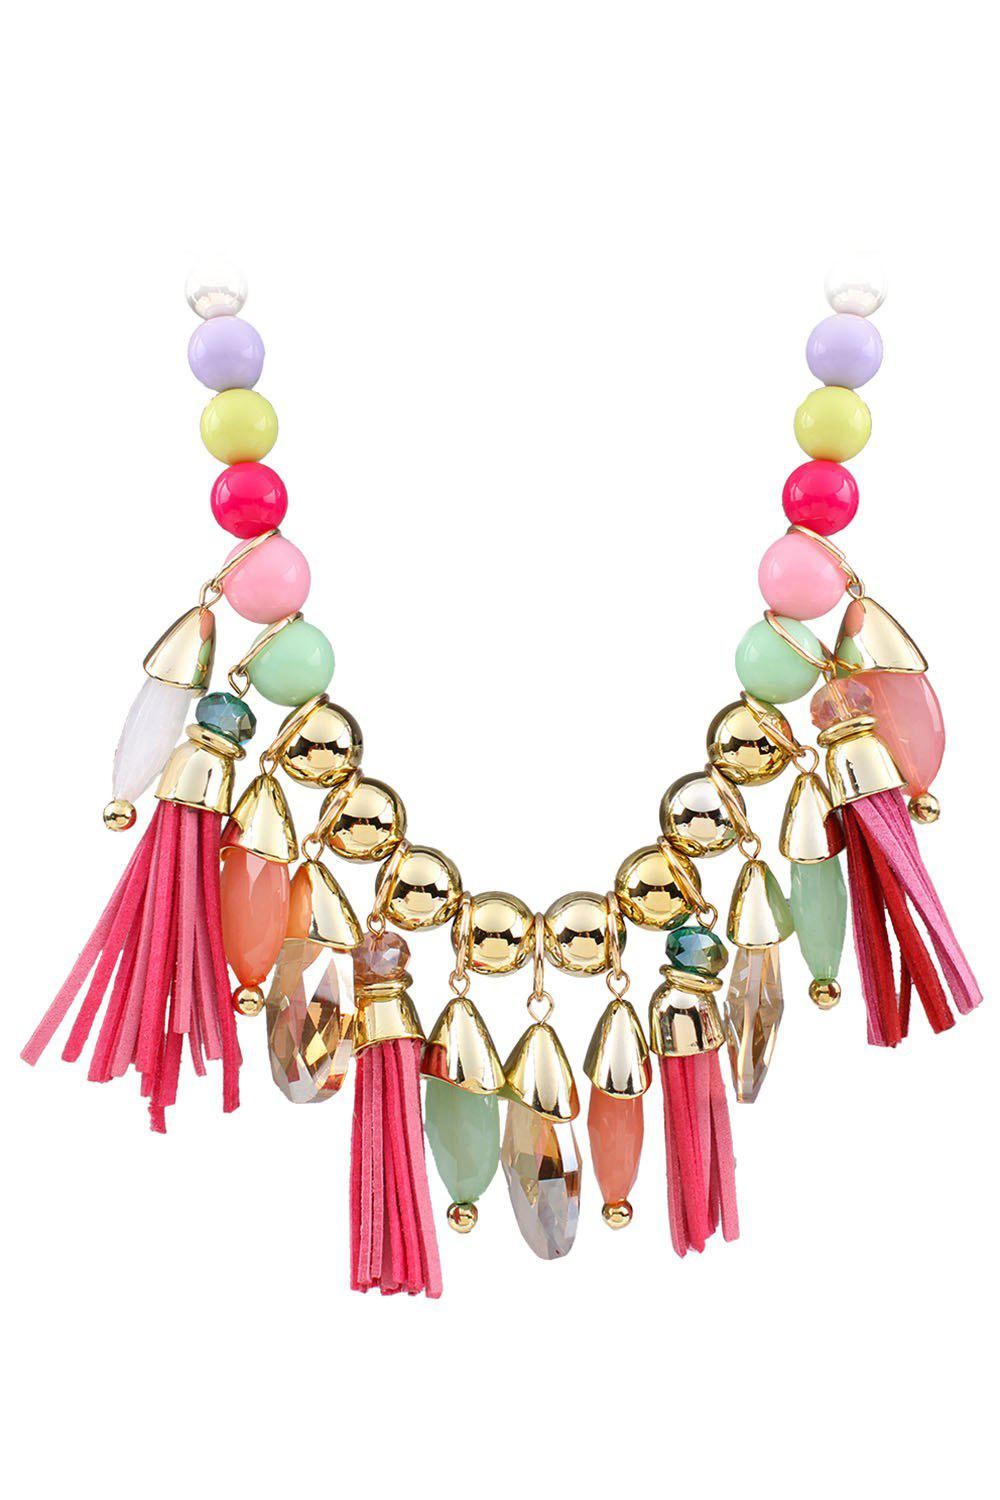 Affordable Ethnic Faux Leather Tassel Multi-Layered Necklace For Women